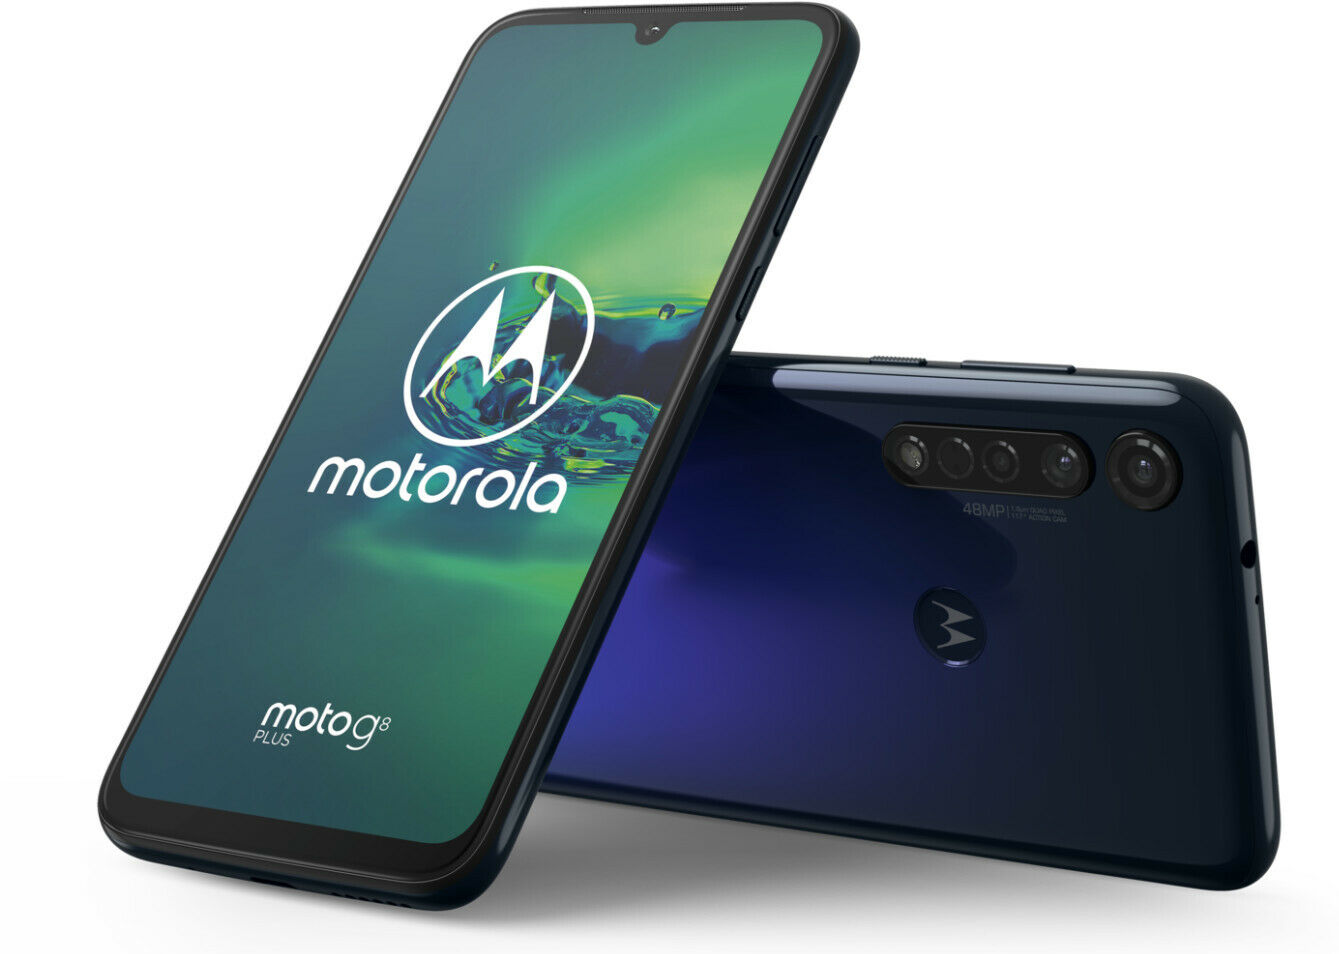 MOTOROLA Moto g8 Plus 6,3 Zoll 64 GB 48 MP Triple-Kamera cosmic blue blau B-WARE